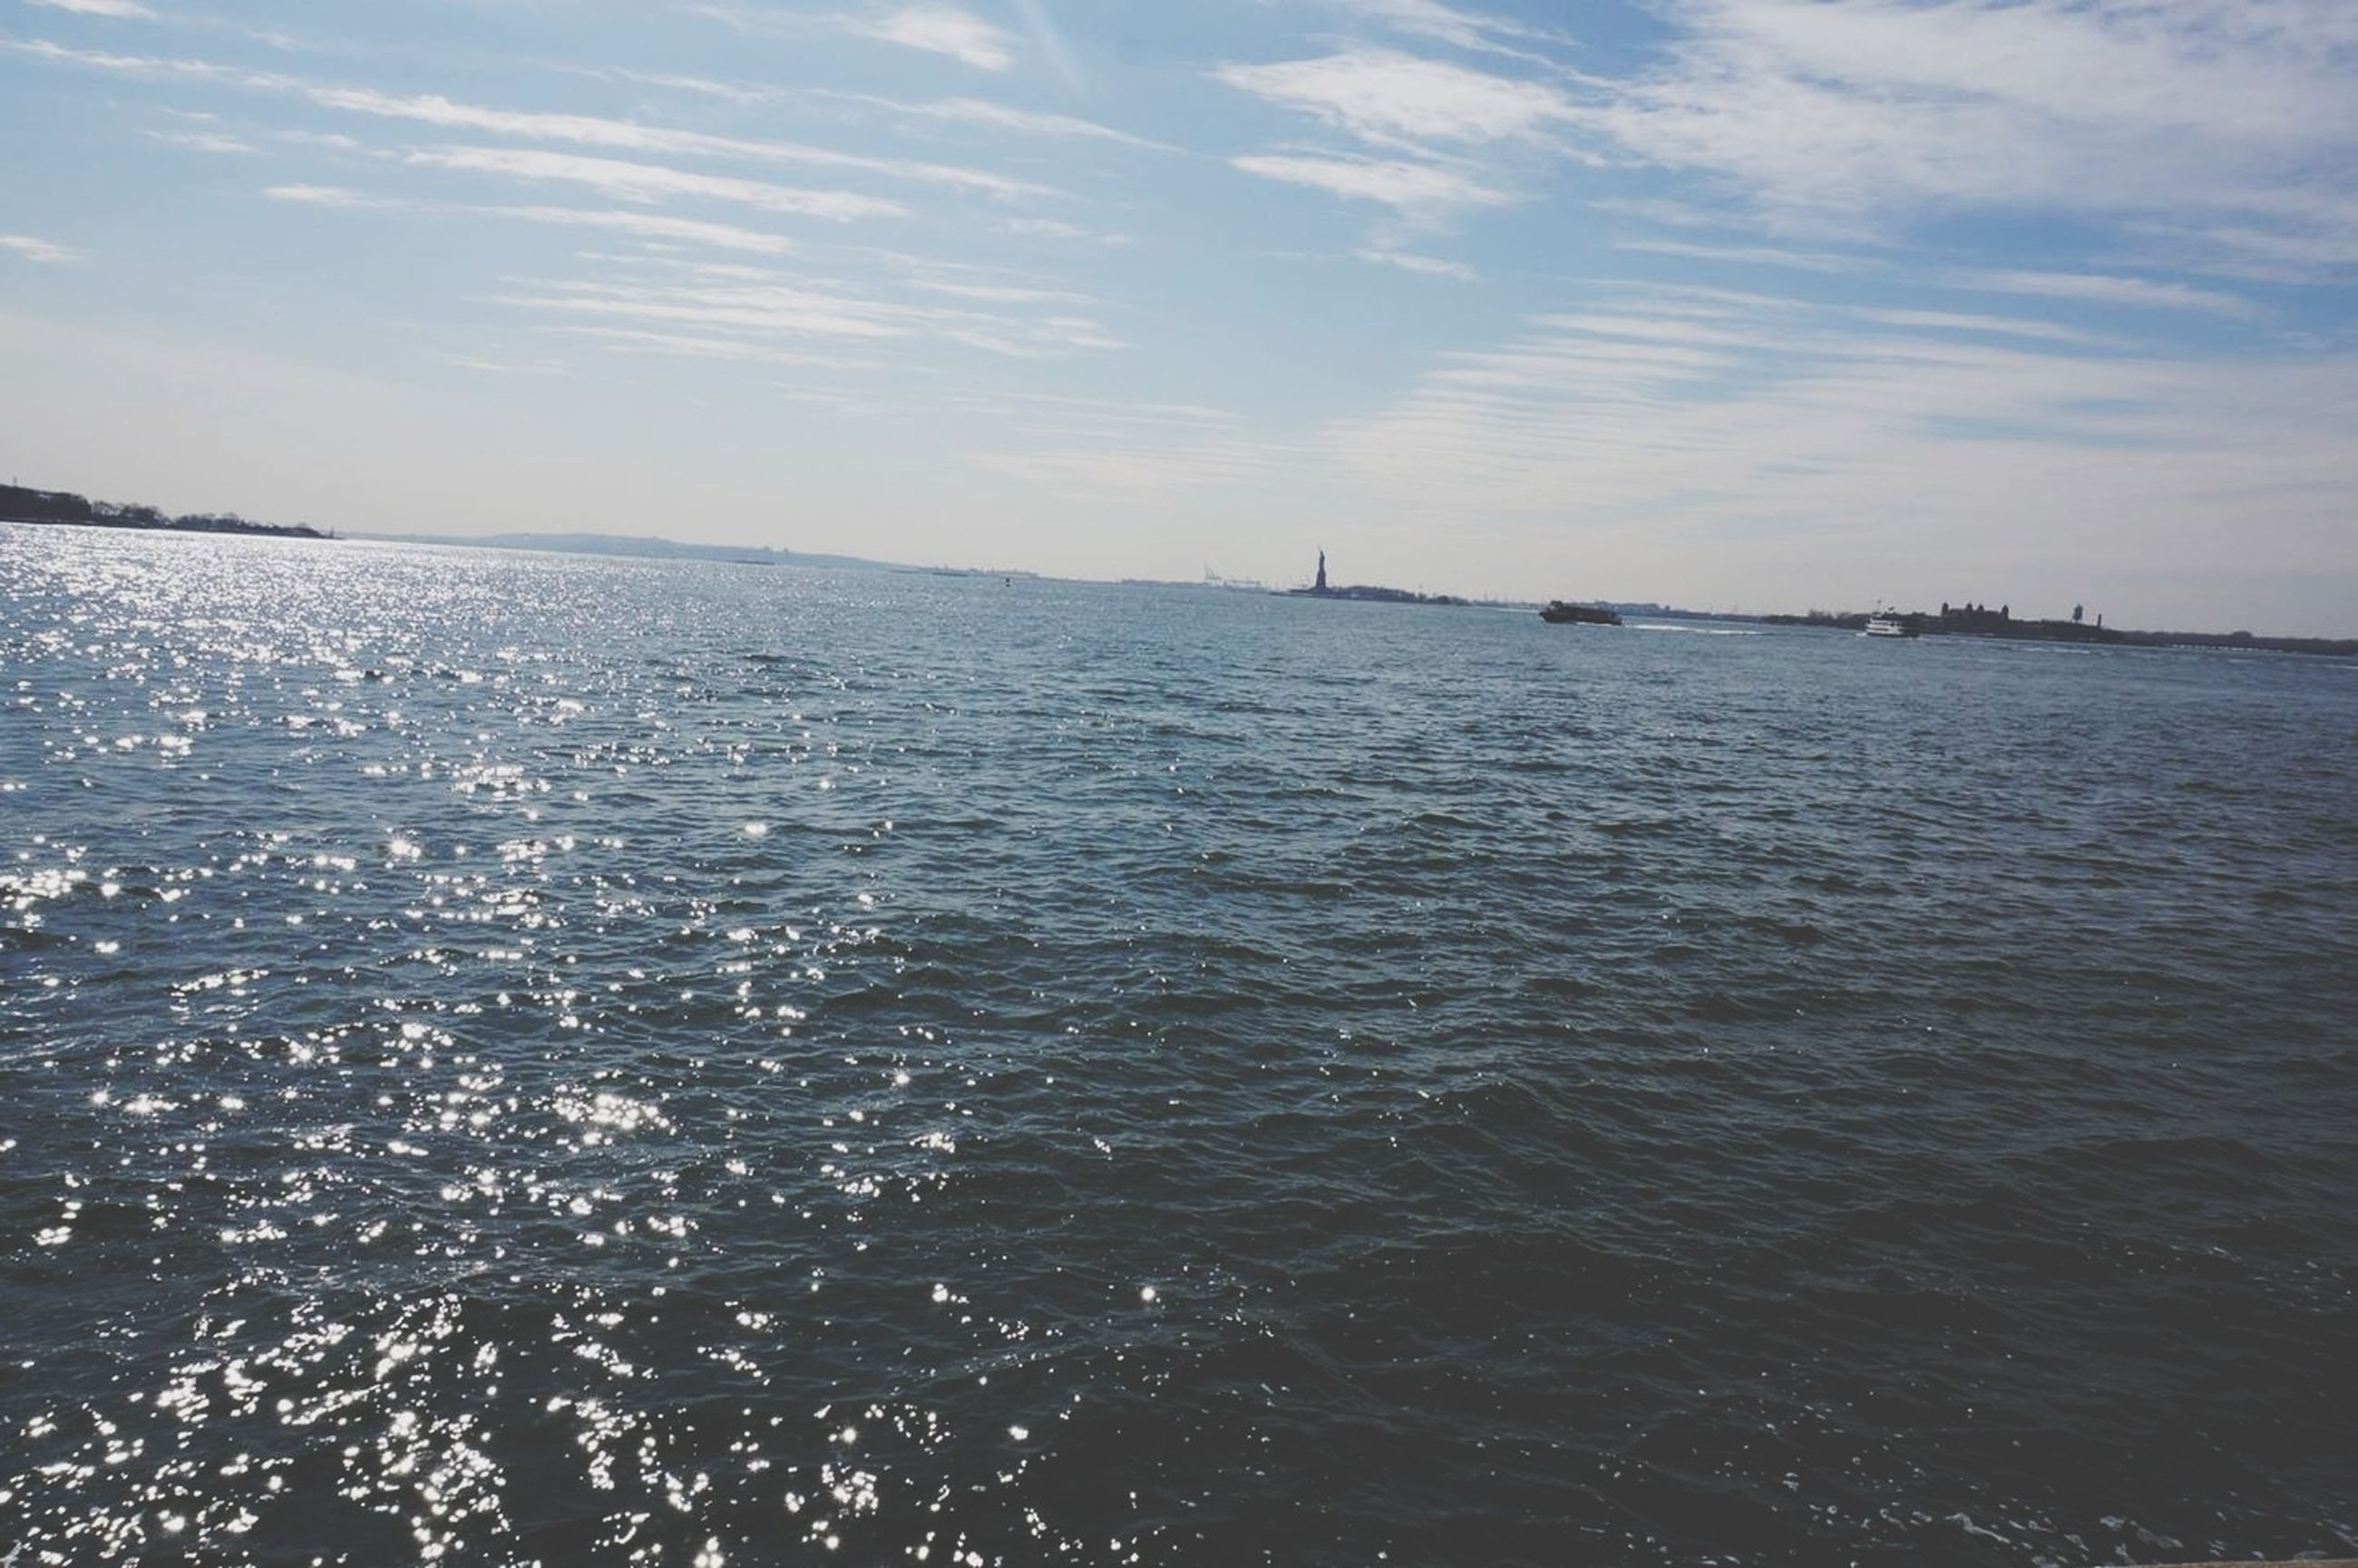 water, sea, sky, waterfront, tranquil scene, tranquility, rippled, scenics, beauty in nature, nature, cloud - sky, horizon over water, idyllic, blue, cloud, reflection, outdoors, no people, seascape, calm